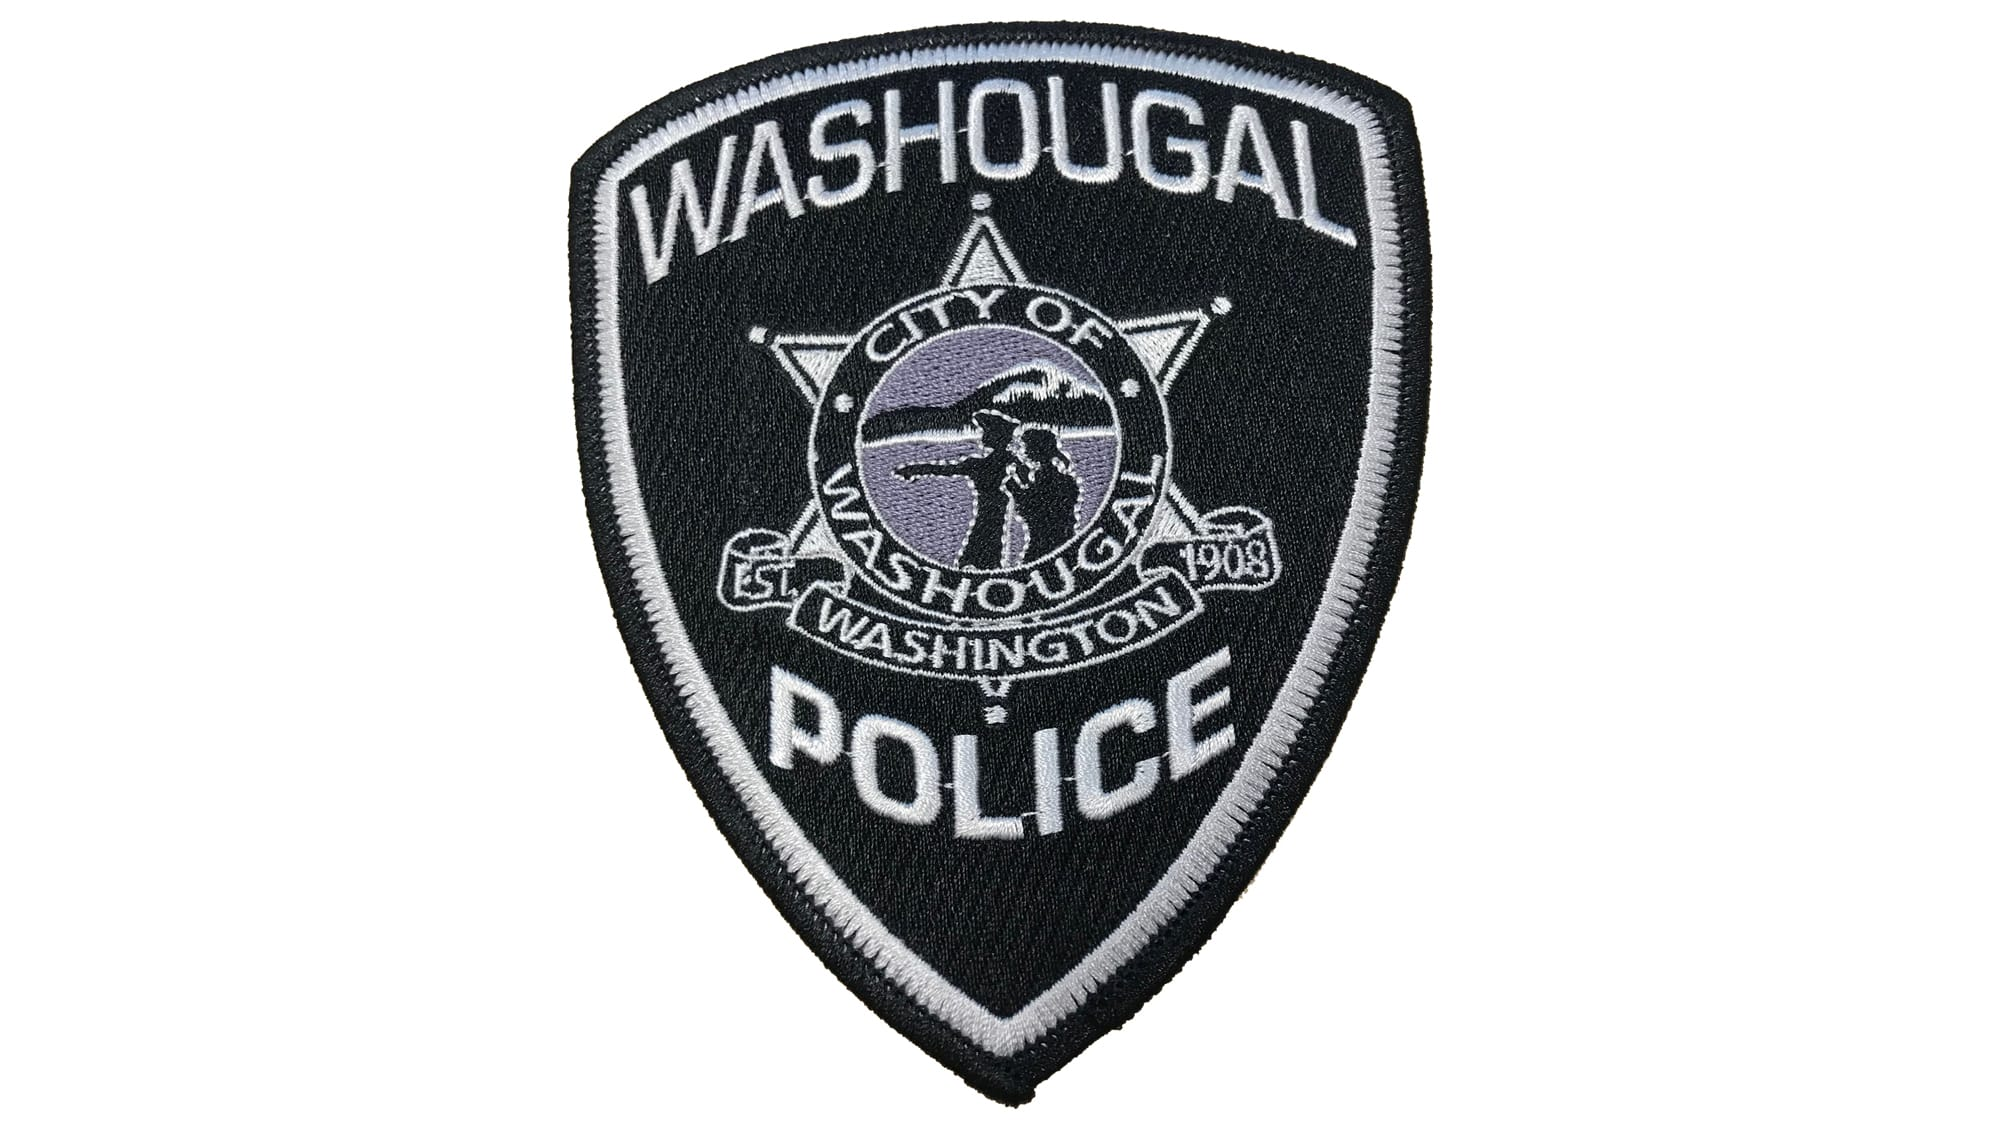 Reception tonight features 4 Washougal police chief finalists